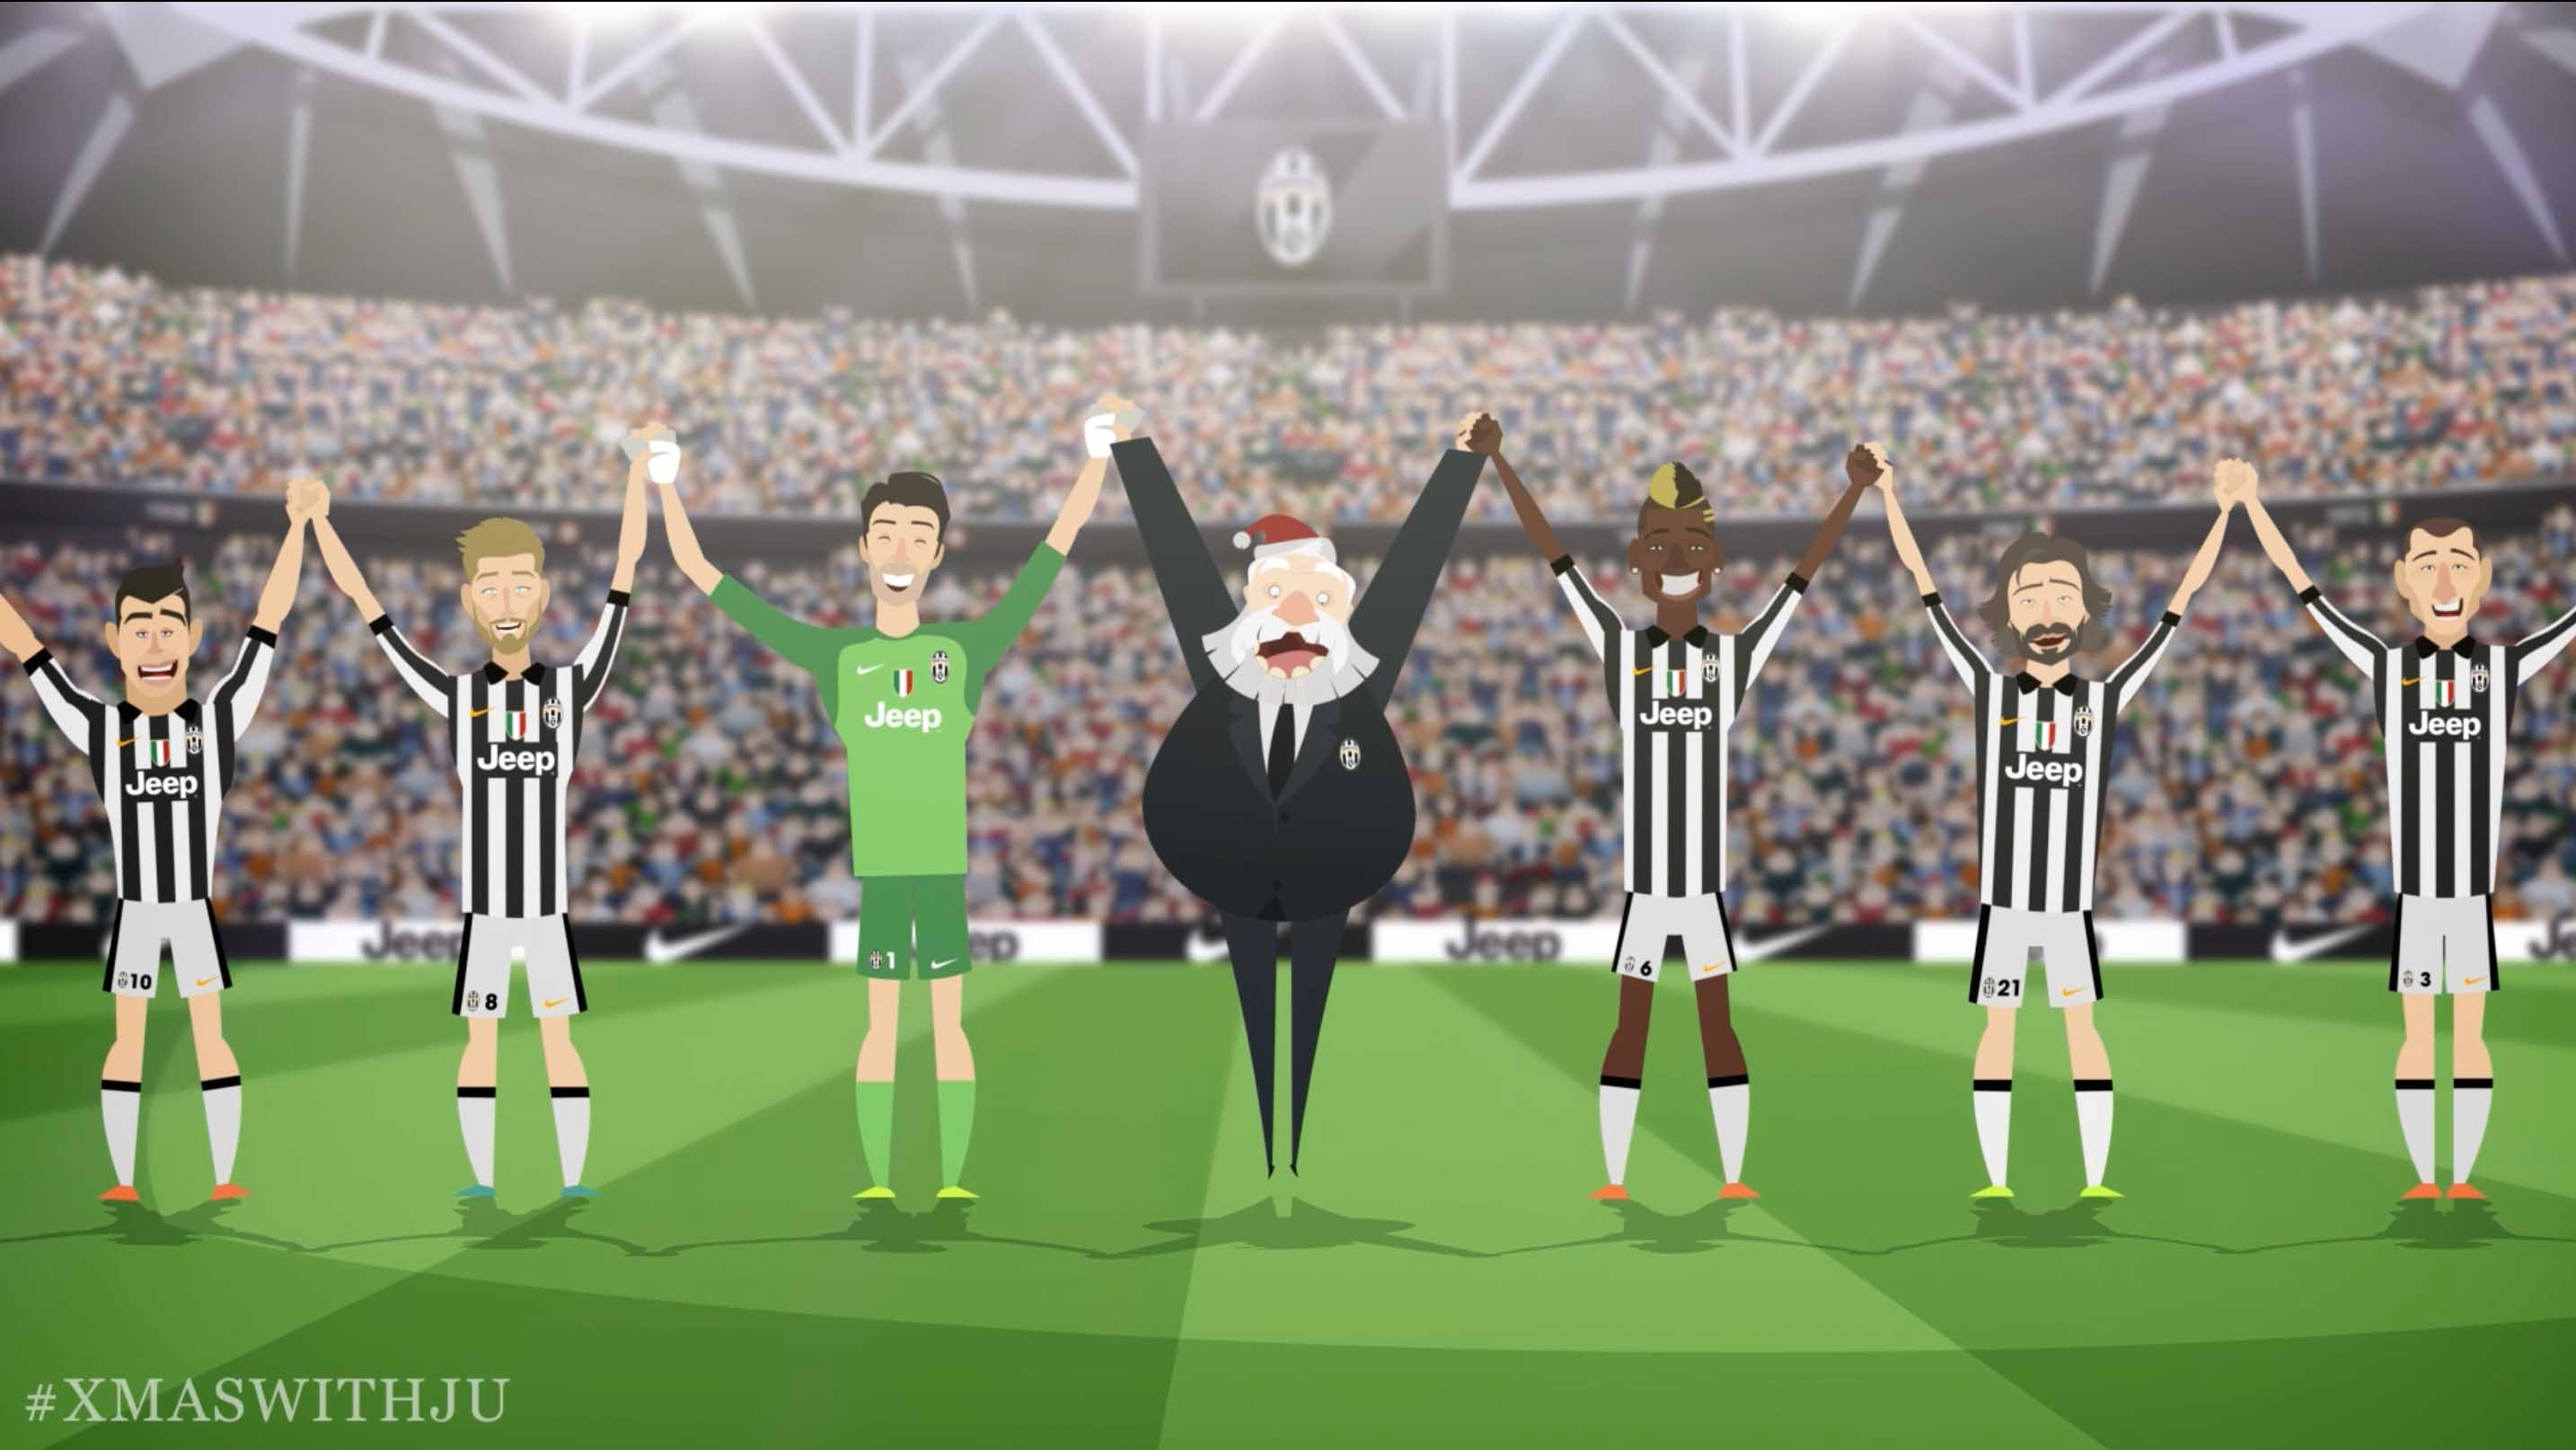 Juventus and Santa Claus spend Christmas together